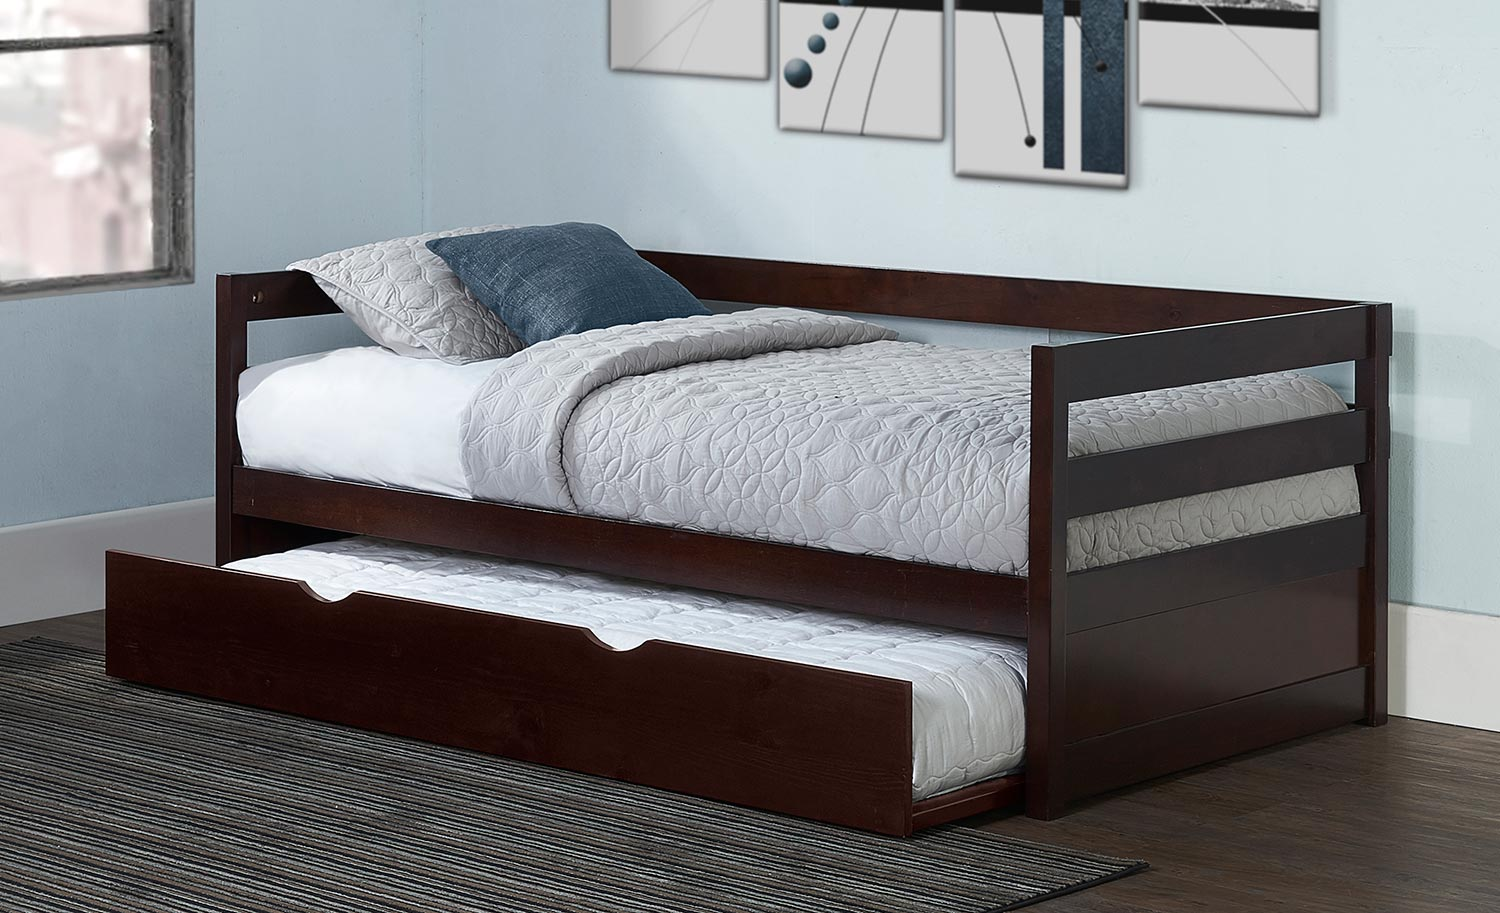 Hillsdale Caspian Daybed With Trundle - Chocolate